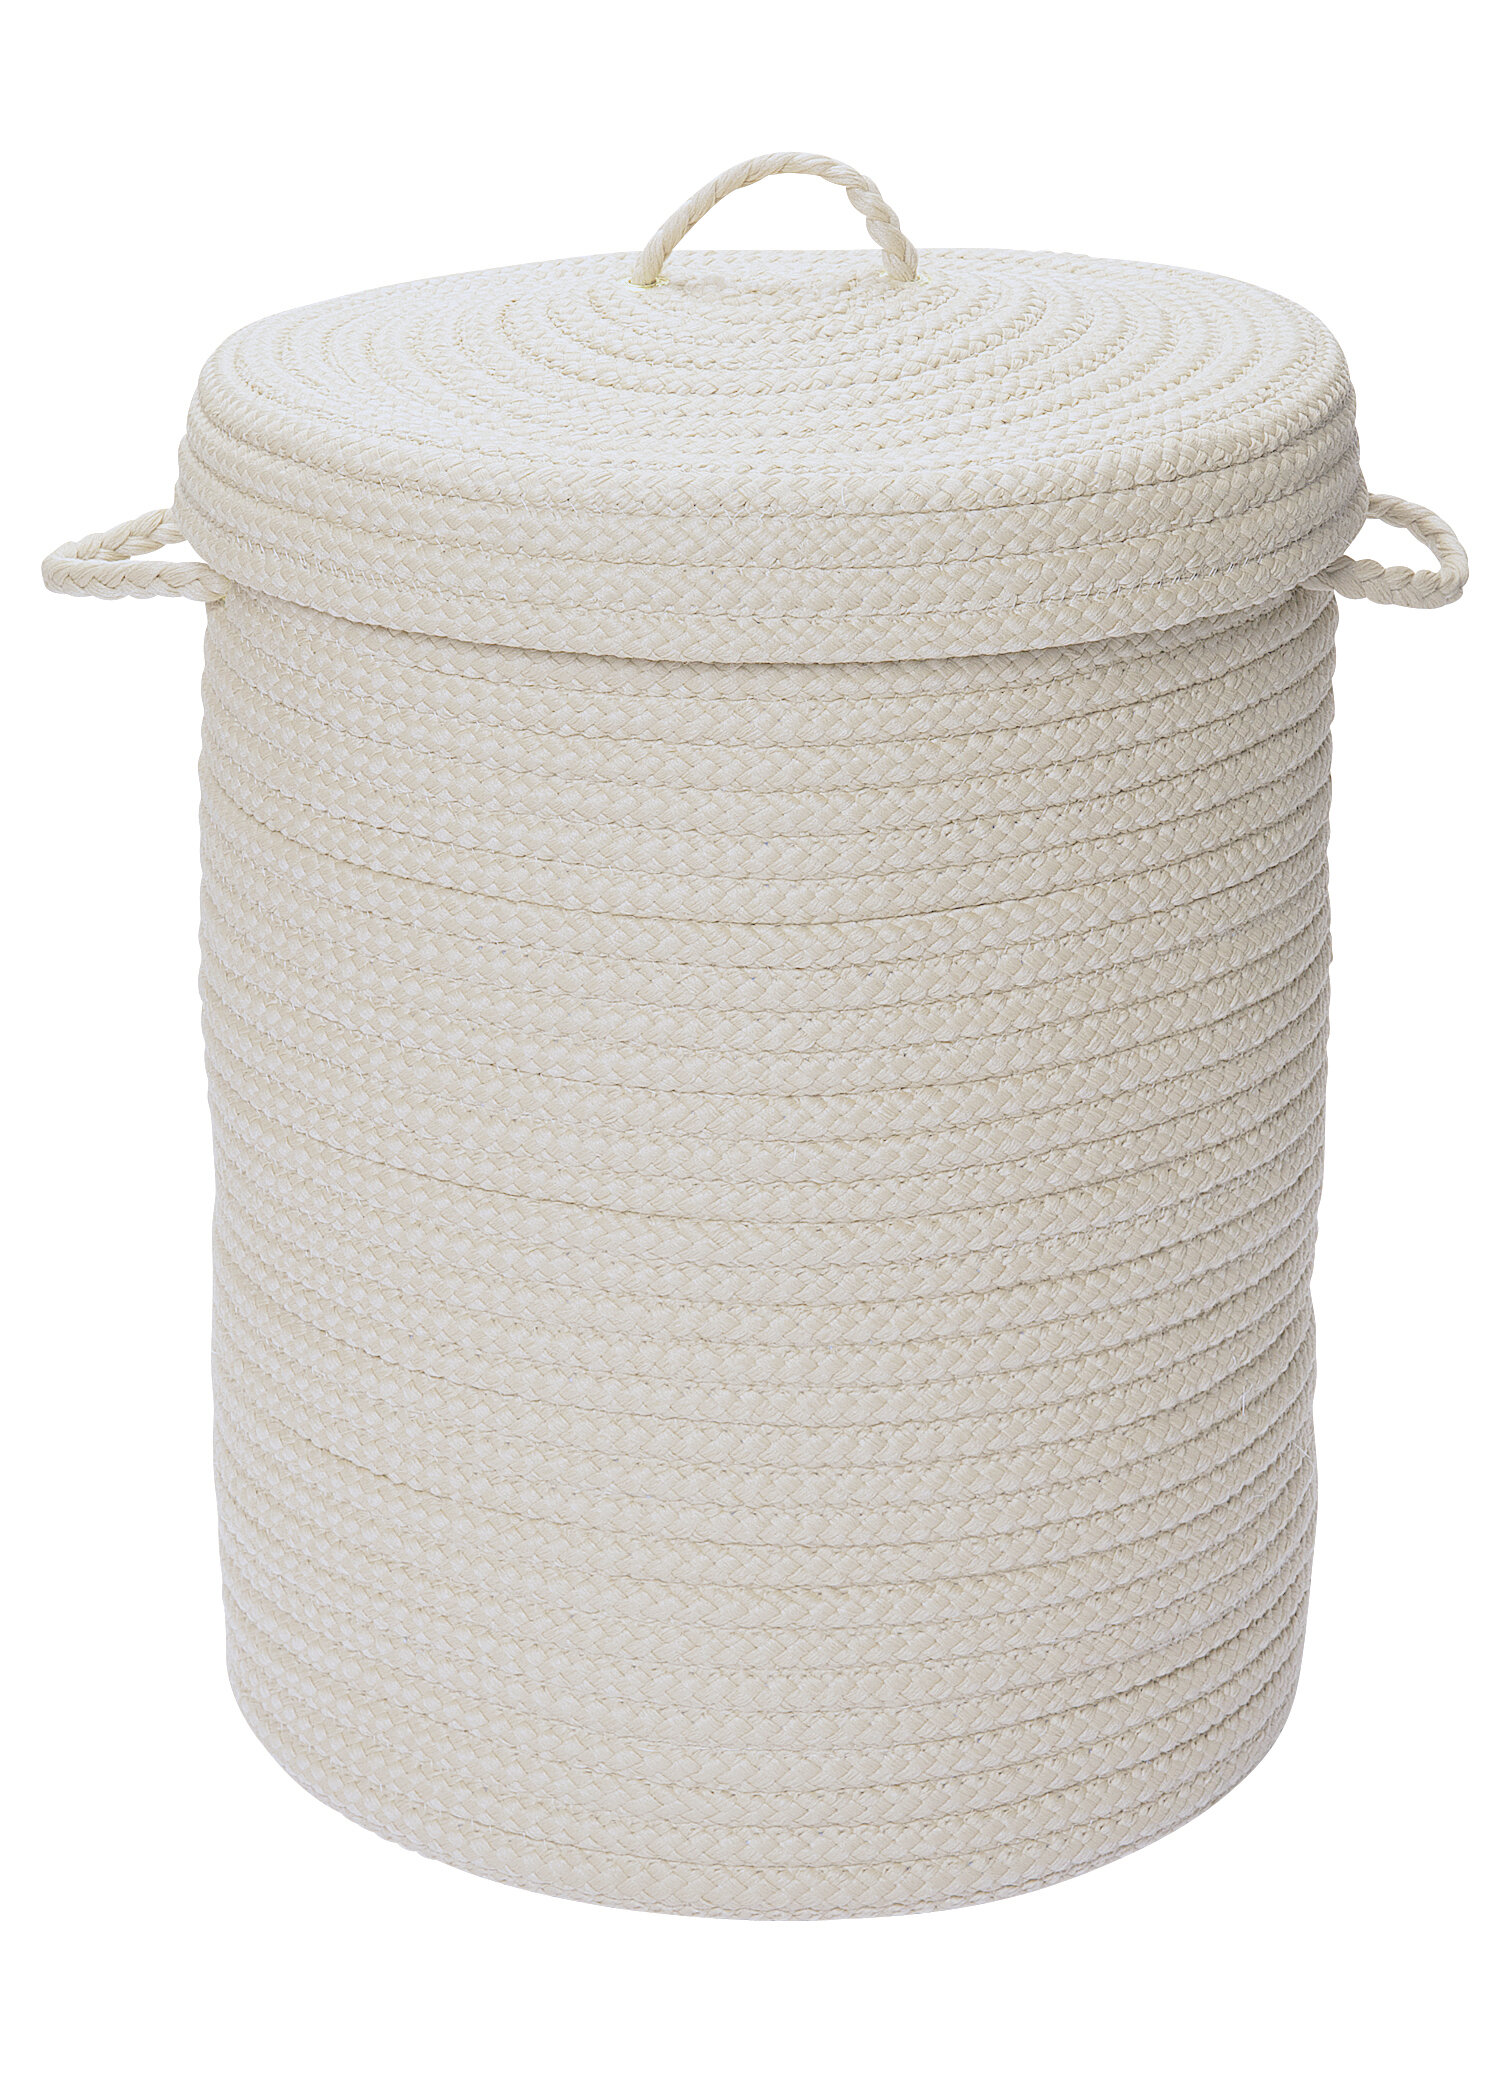 Basket for laundry in the bathroom: types and features